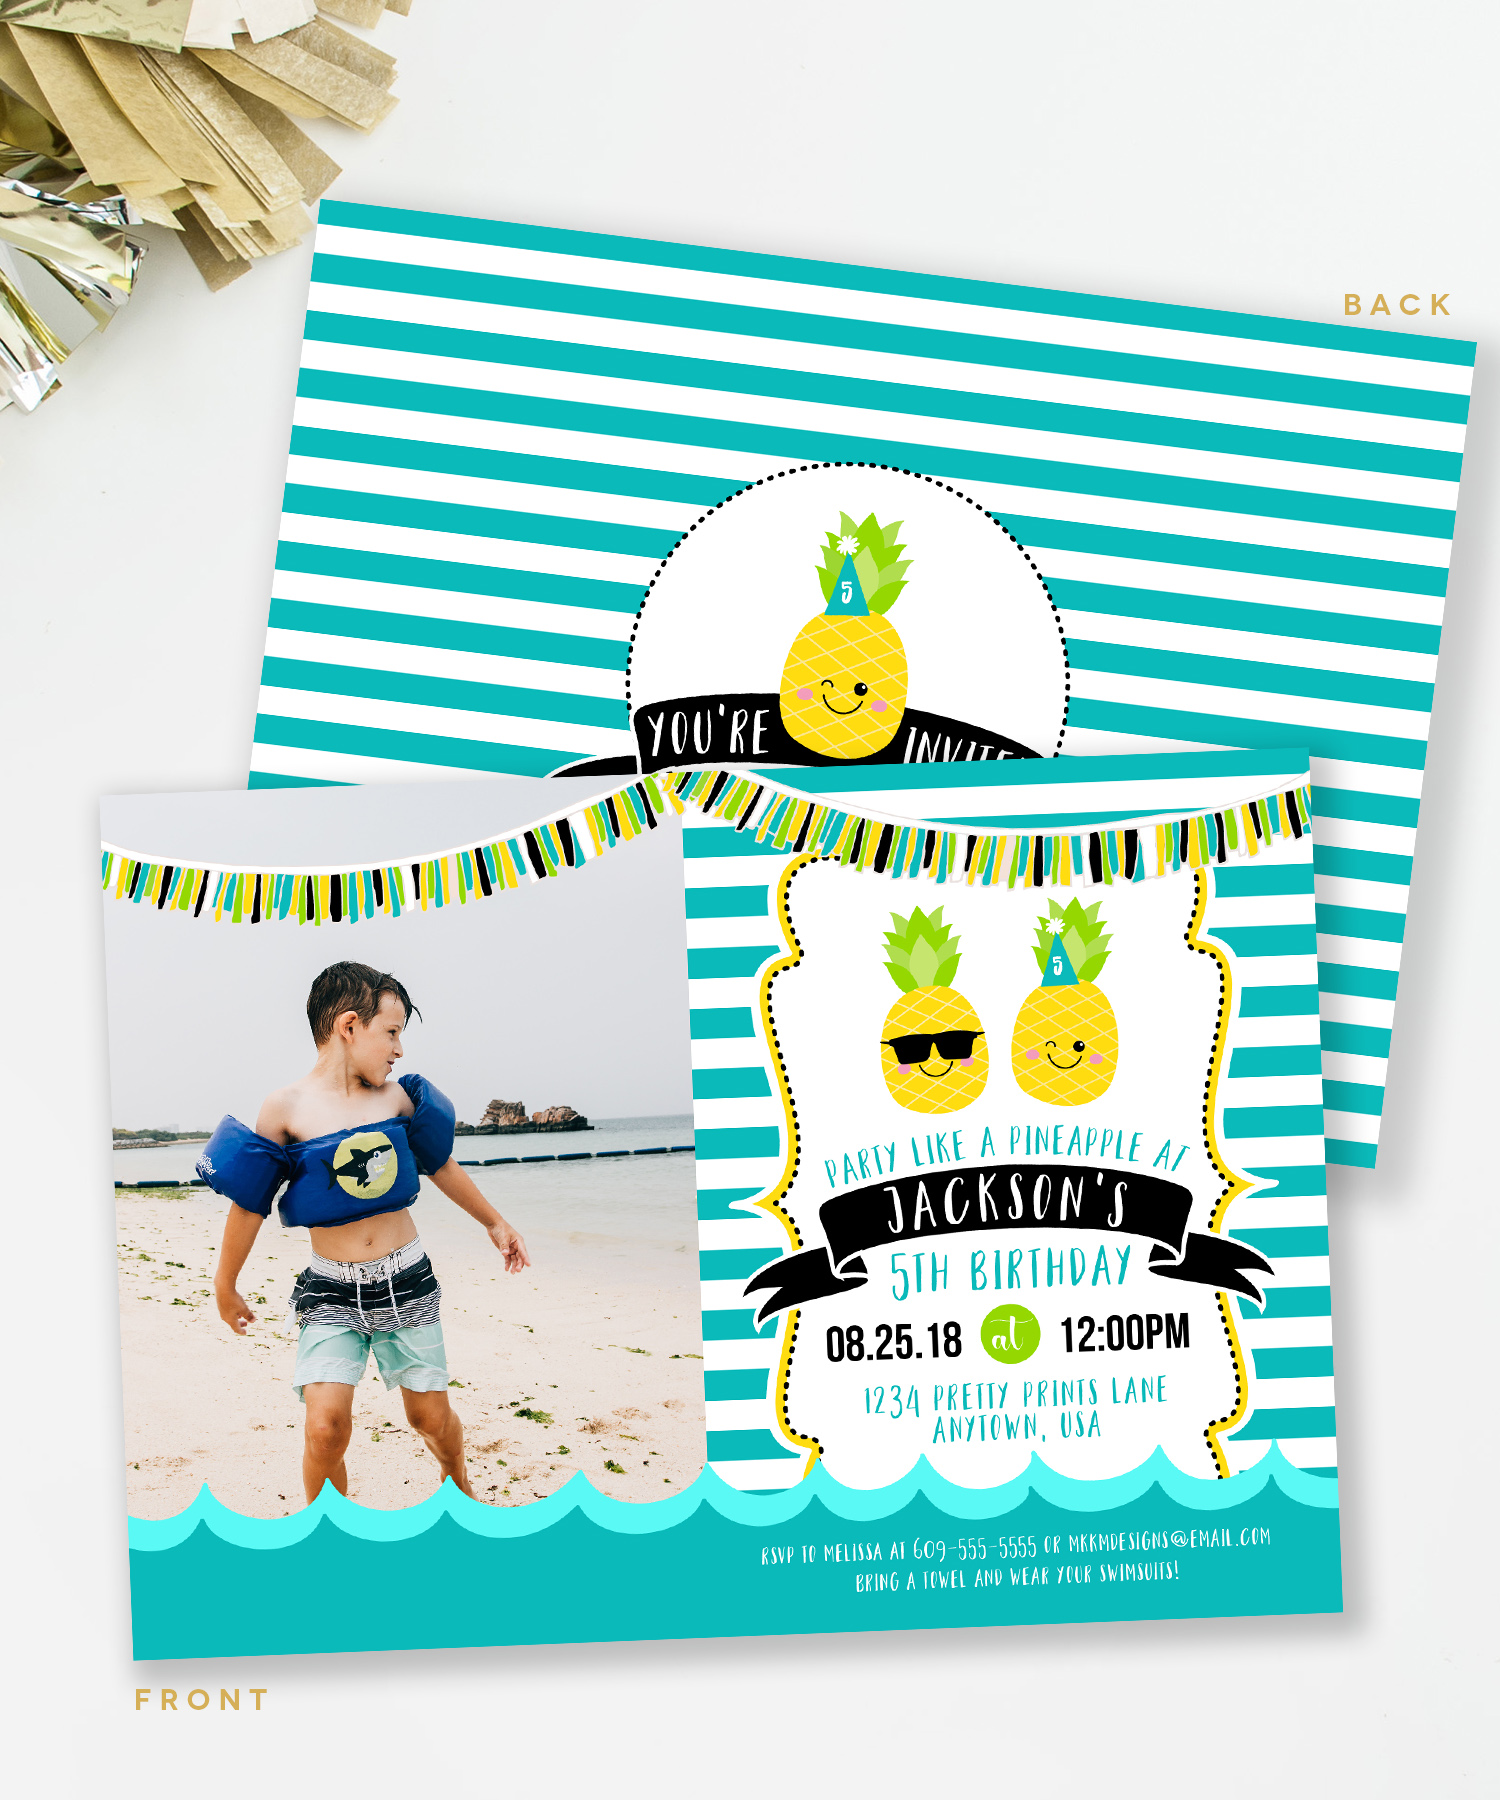 Pineapple party invites from mkkmdesigns